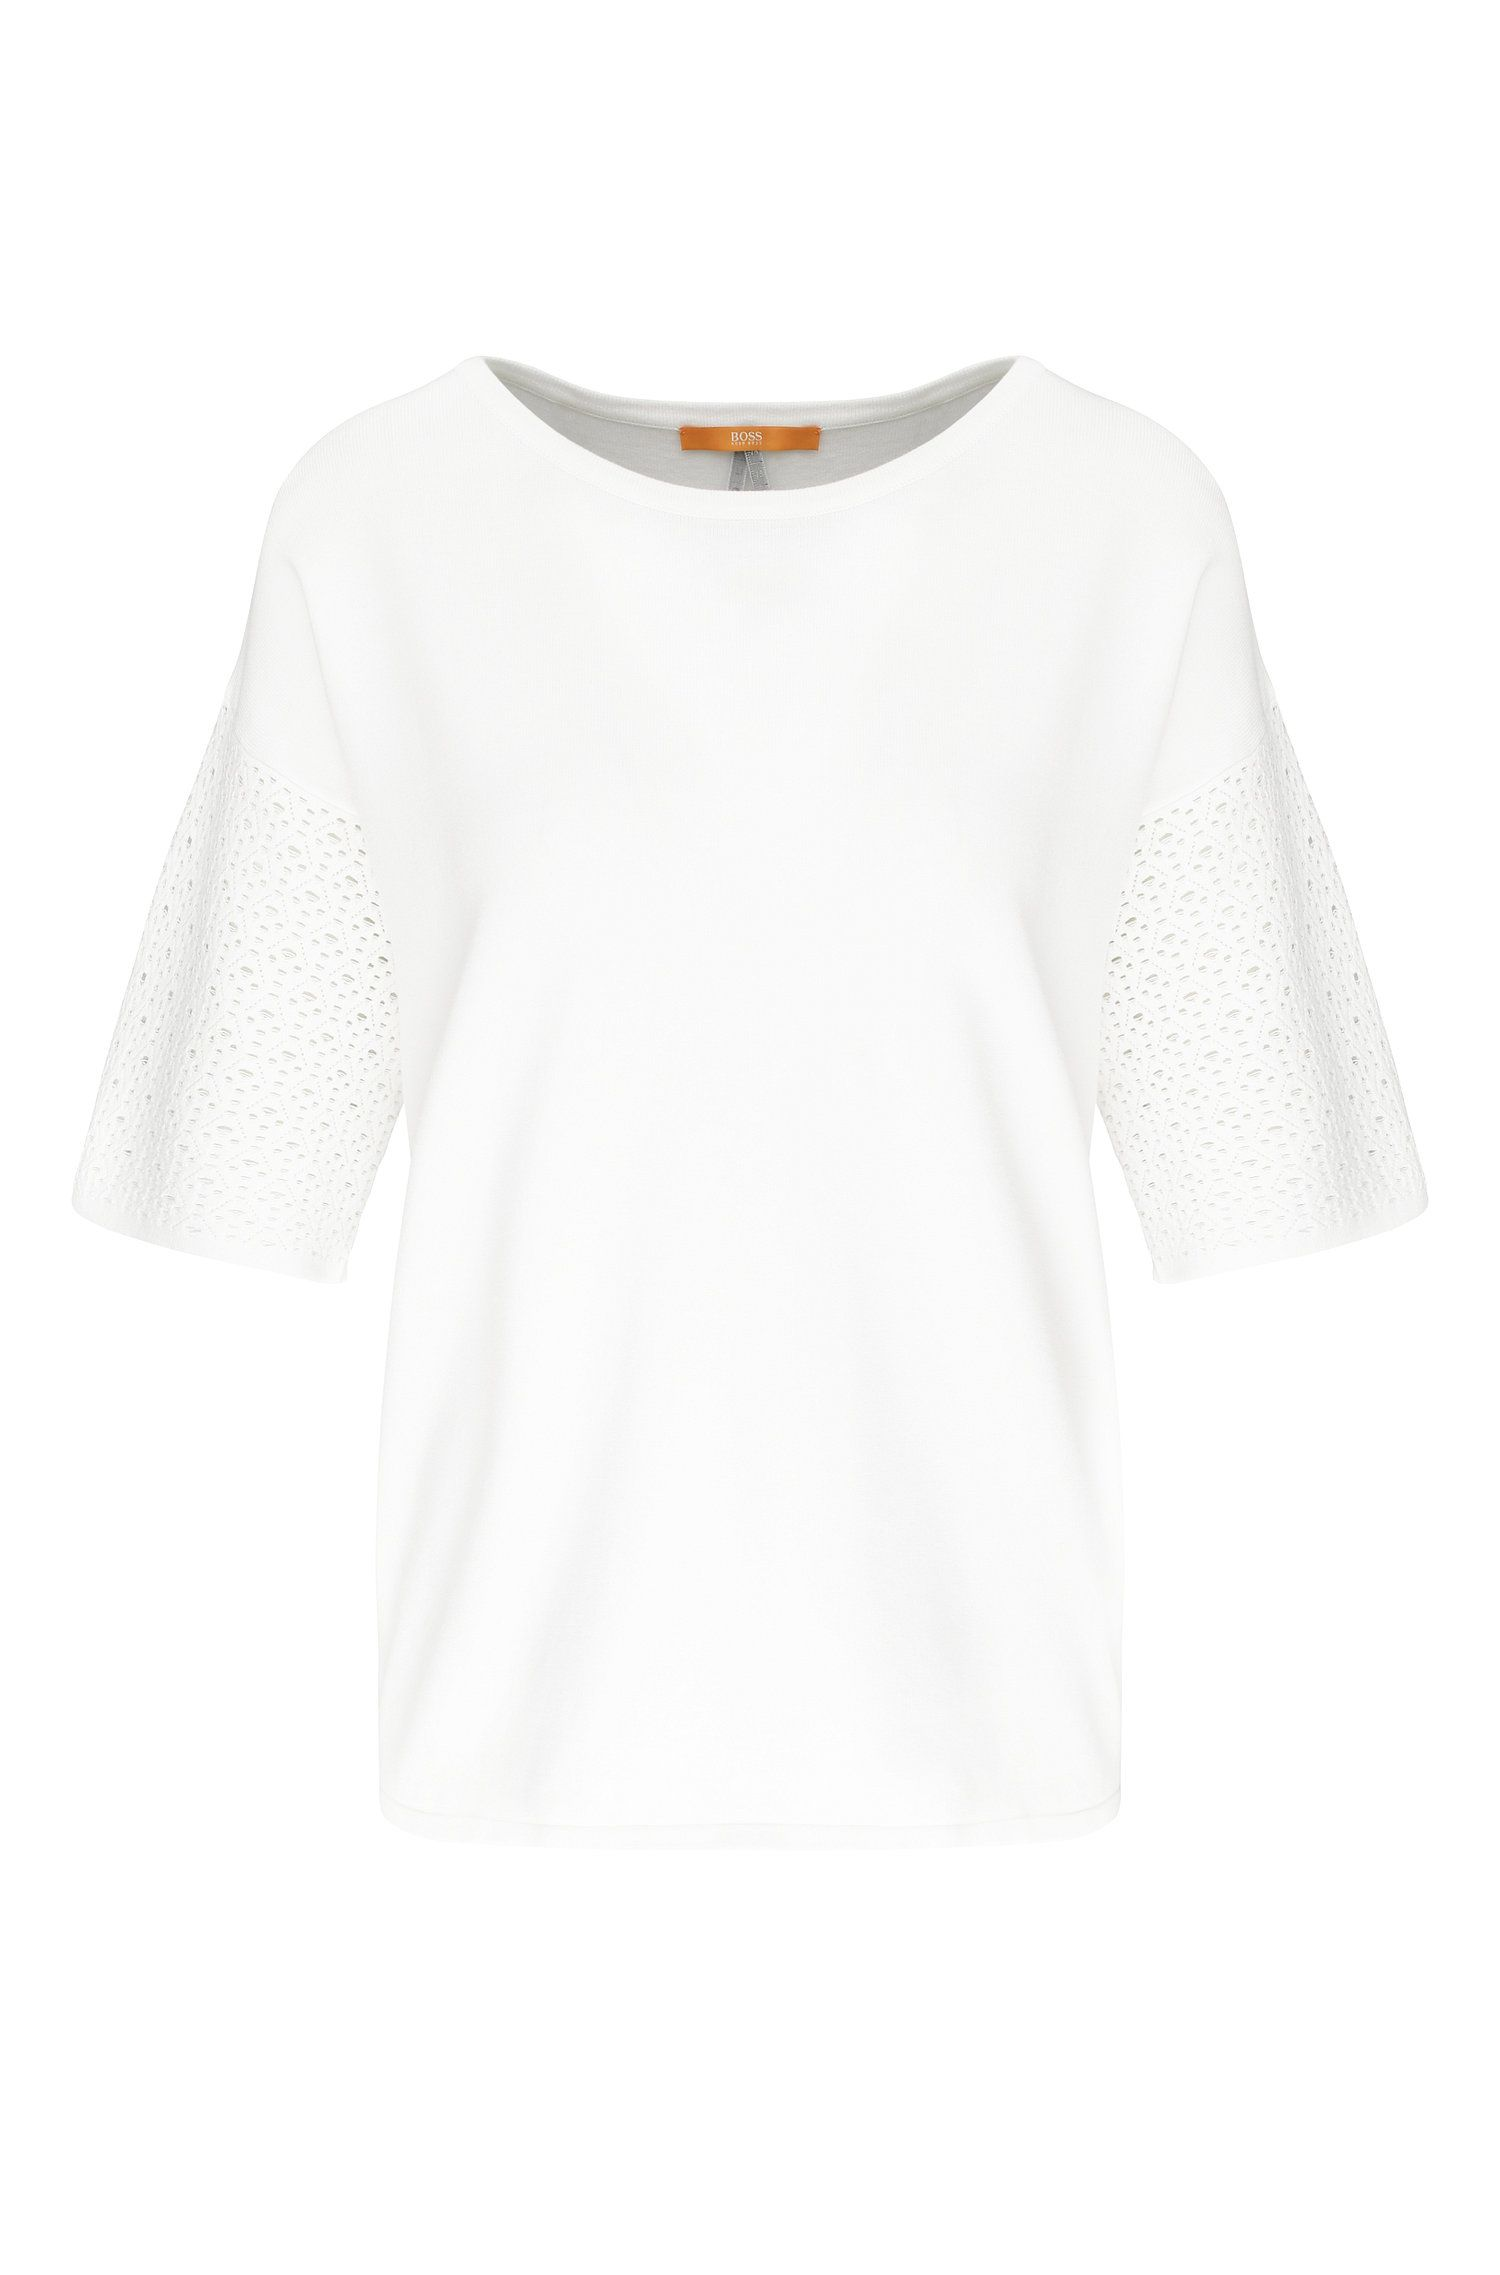 Relaxed-fit t-shirt in material blend with perforated stitches: 'Wittoria'